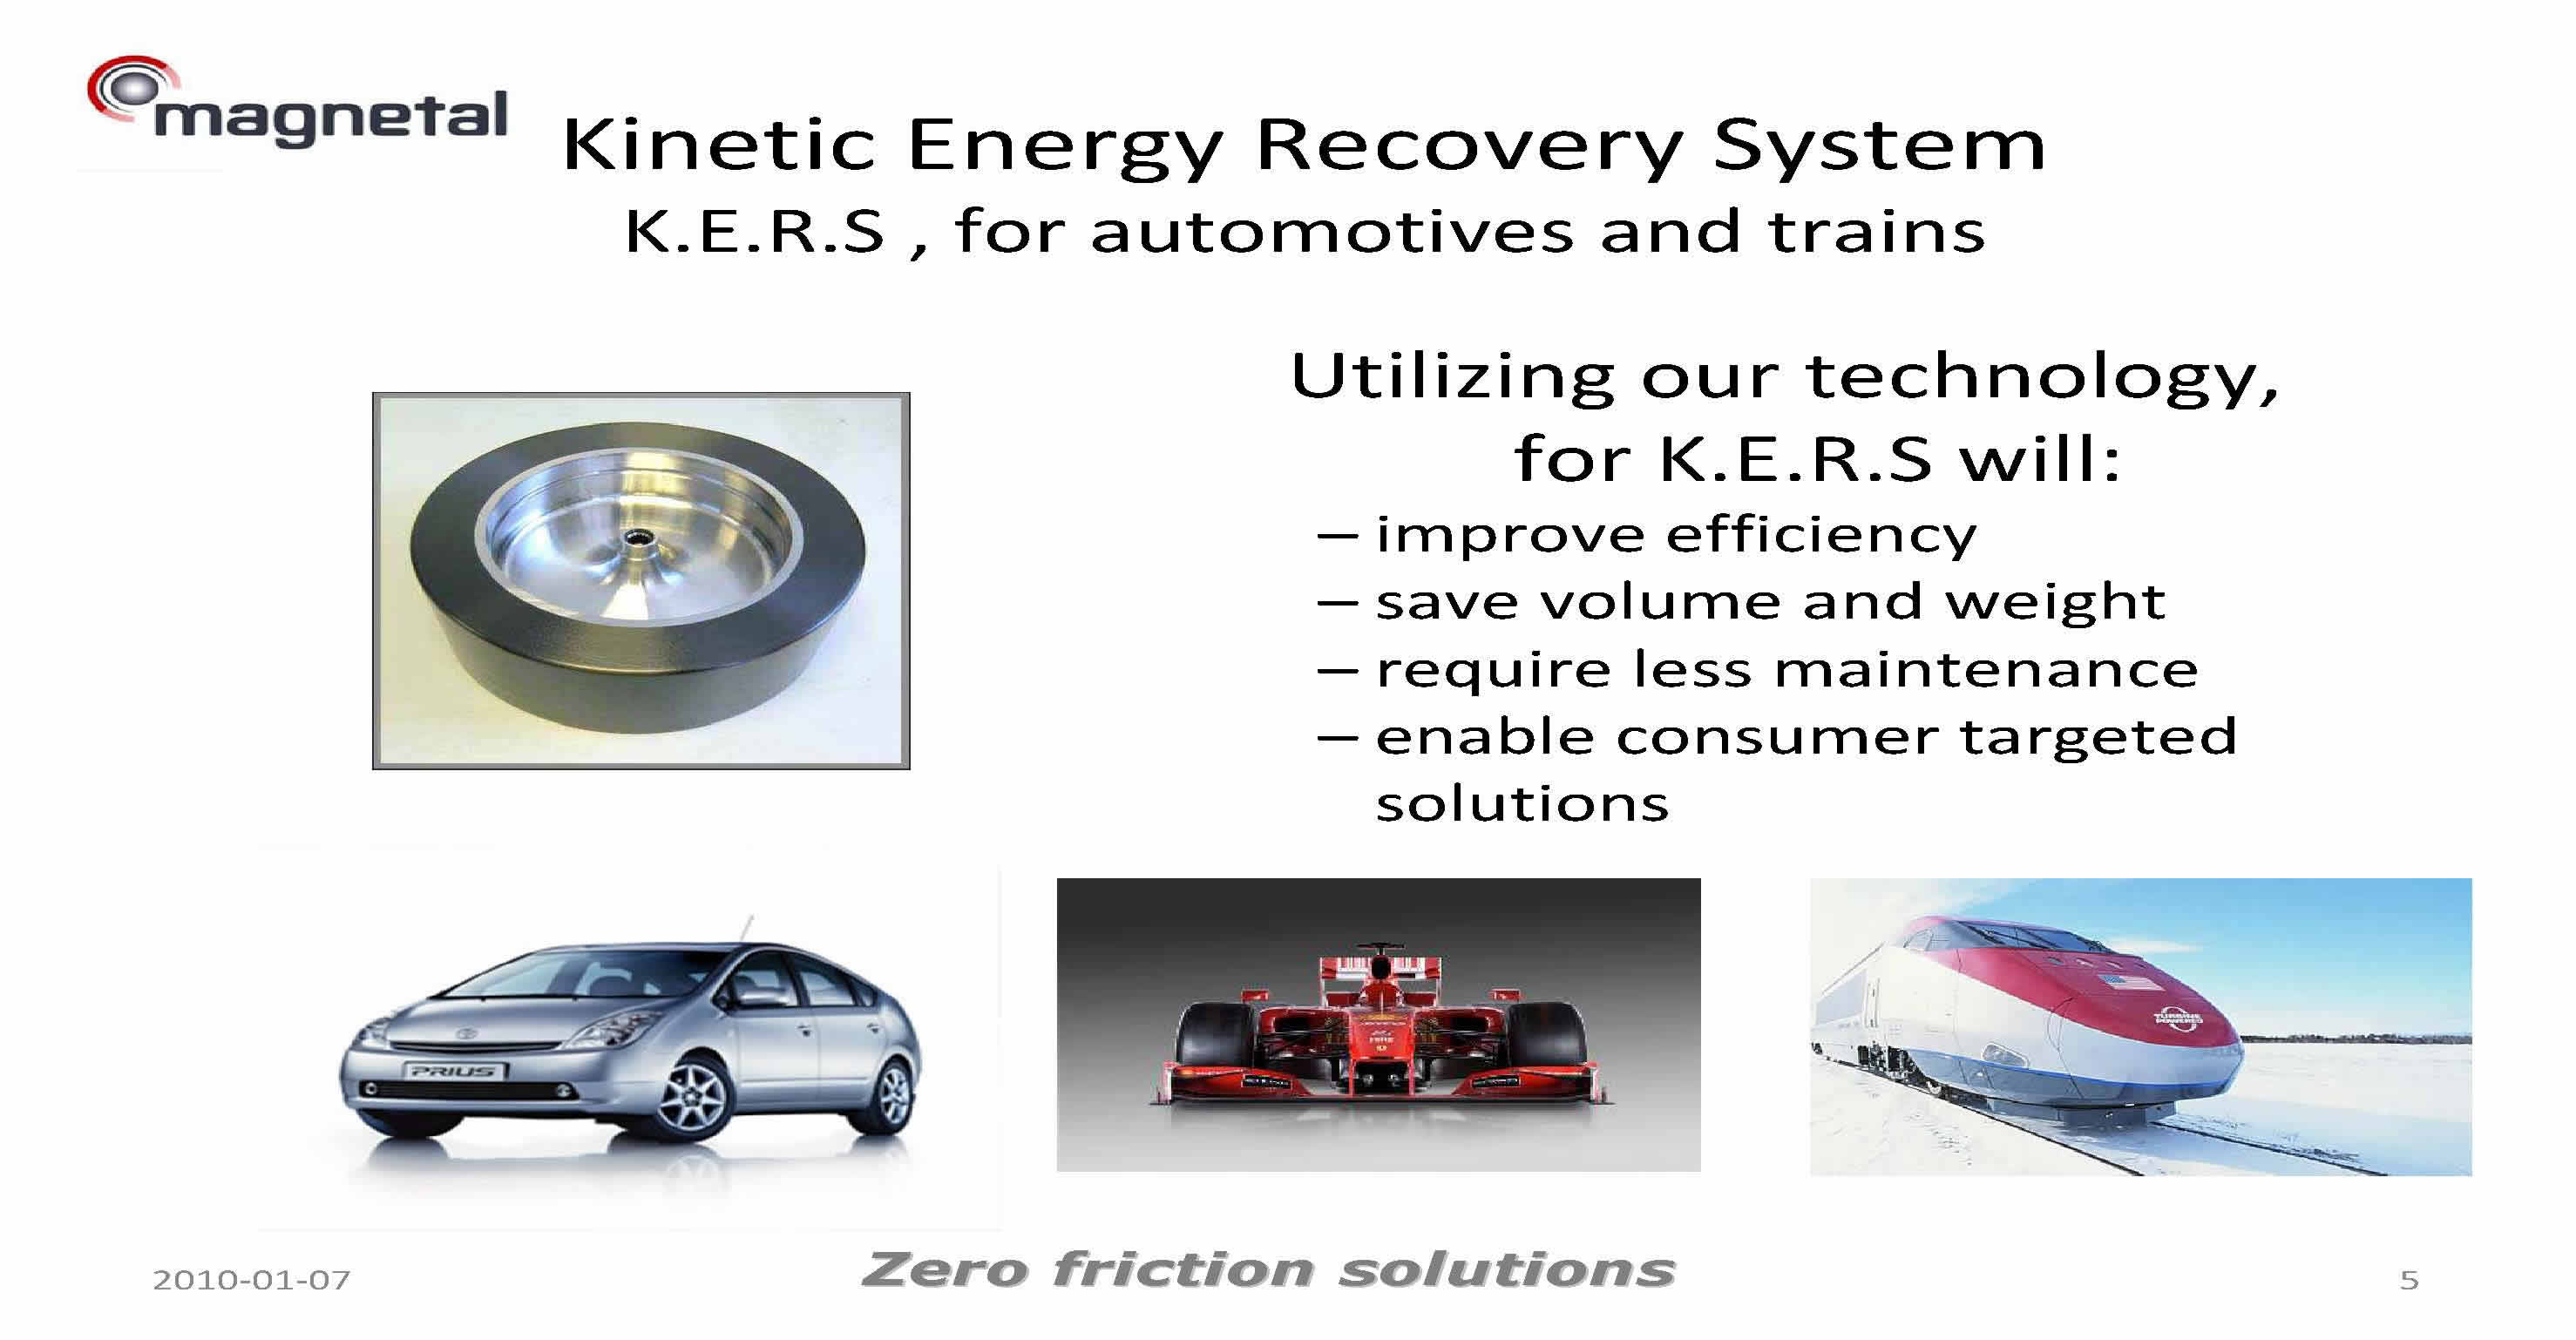 Kinetic Energy Storage System KERS Benefits of using Magnetal Bearing Technology